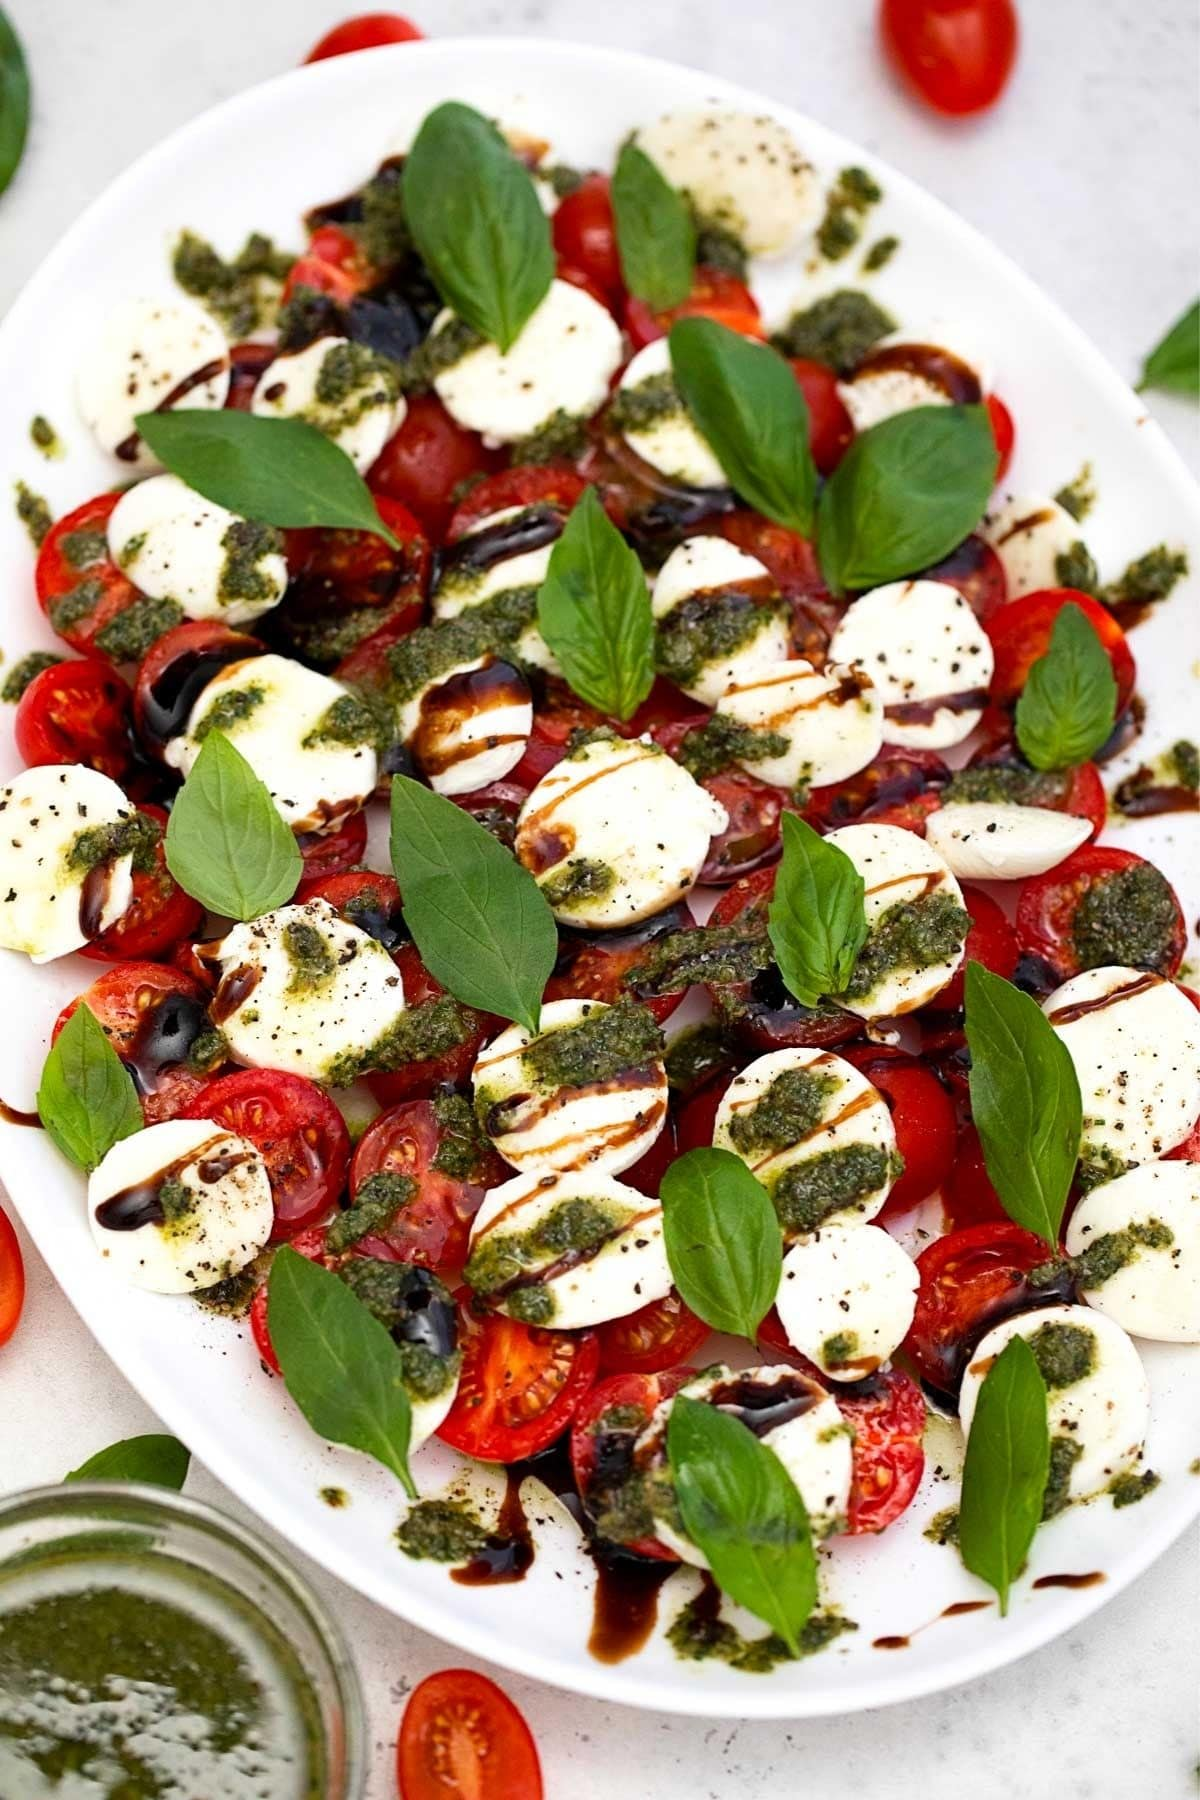 Caprese with pesto drizzle on white plate